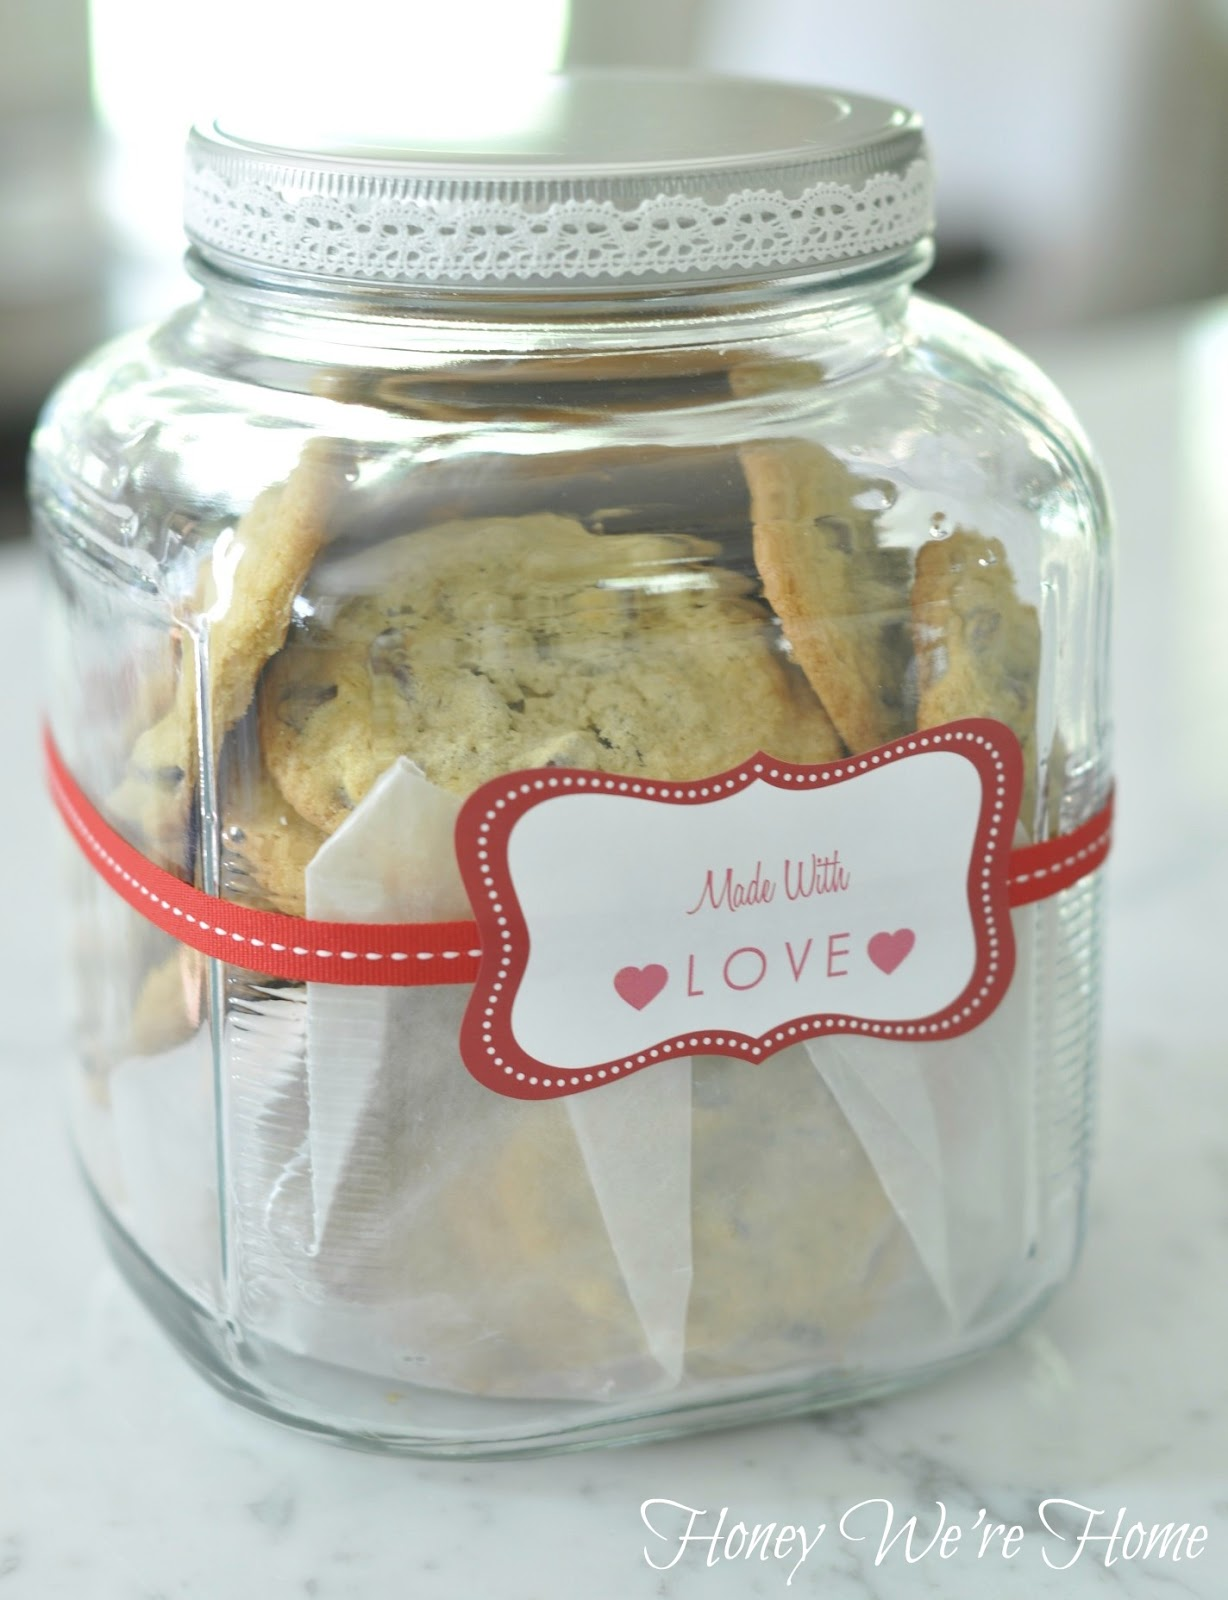 Nice Cookie Jars Homemade Cookies In A Gift Jar Honey We 39re Home